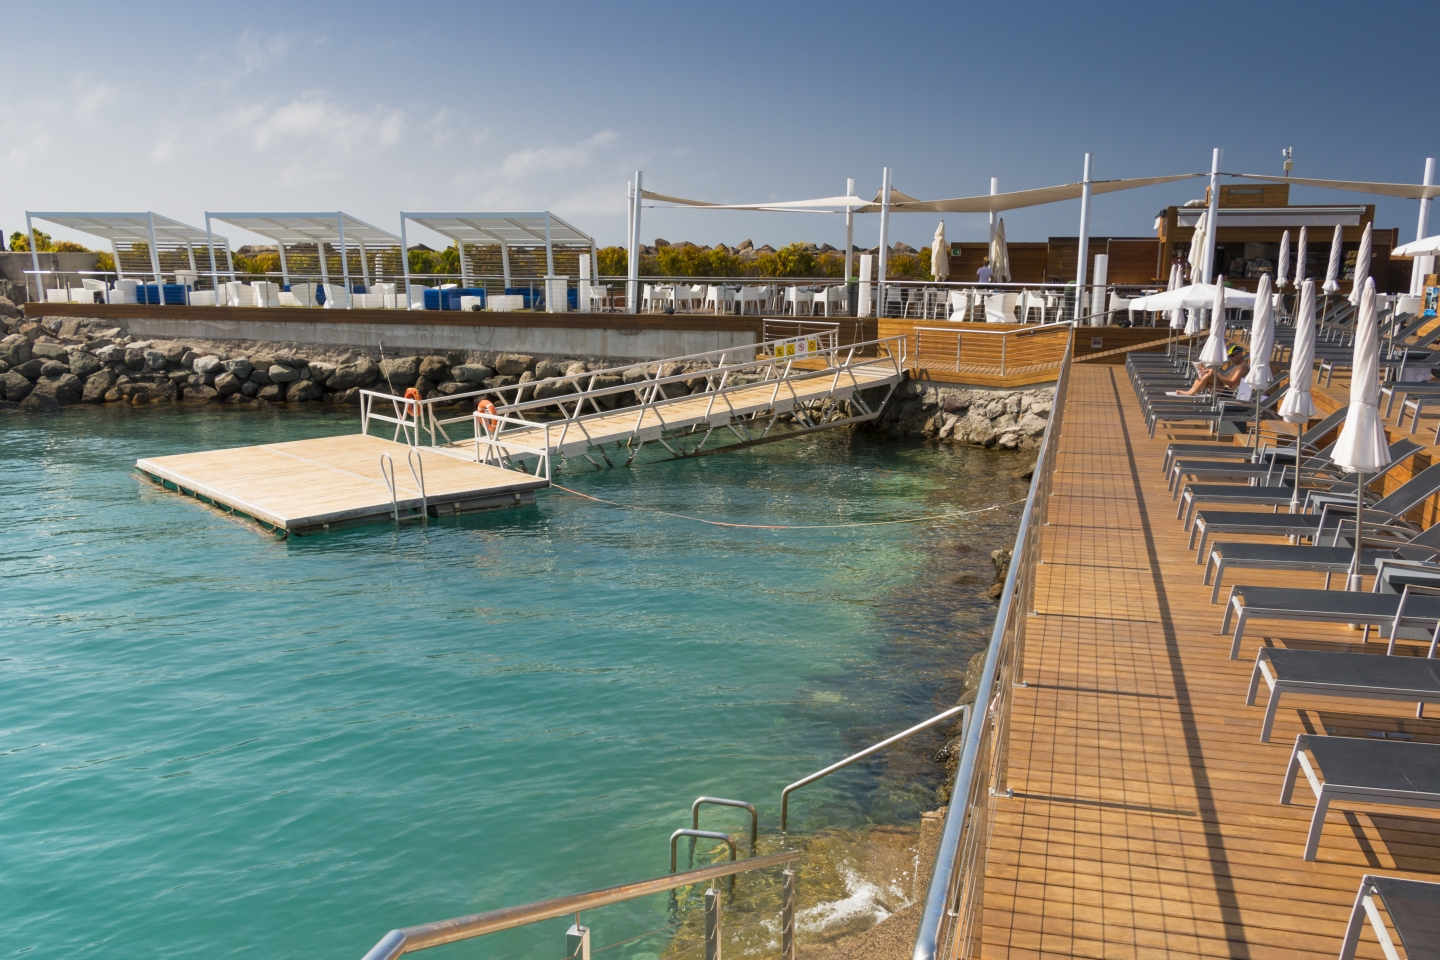 Swimming area at the blue flag Pasito Blanco marina